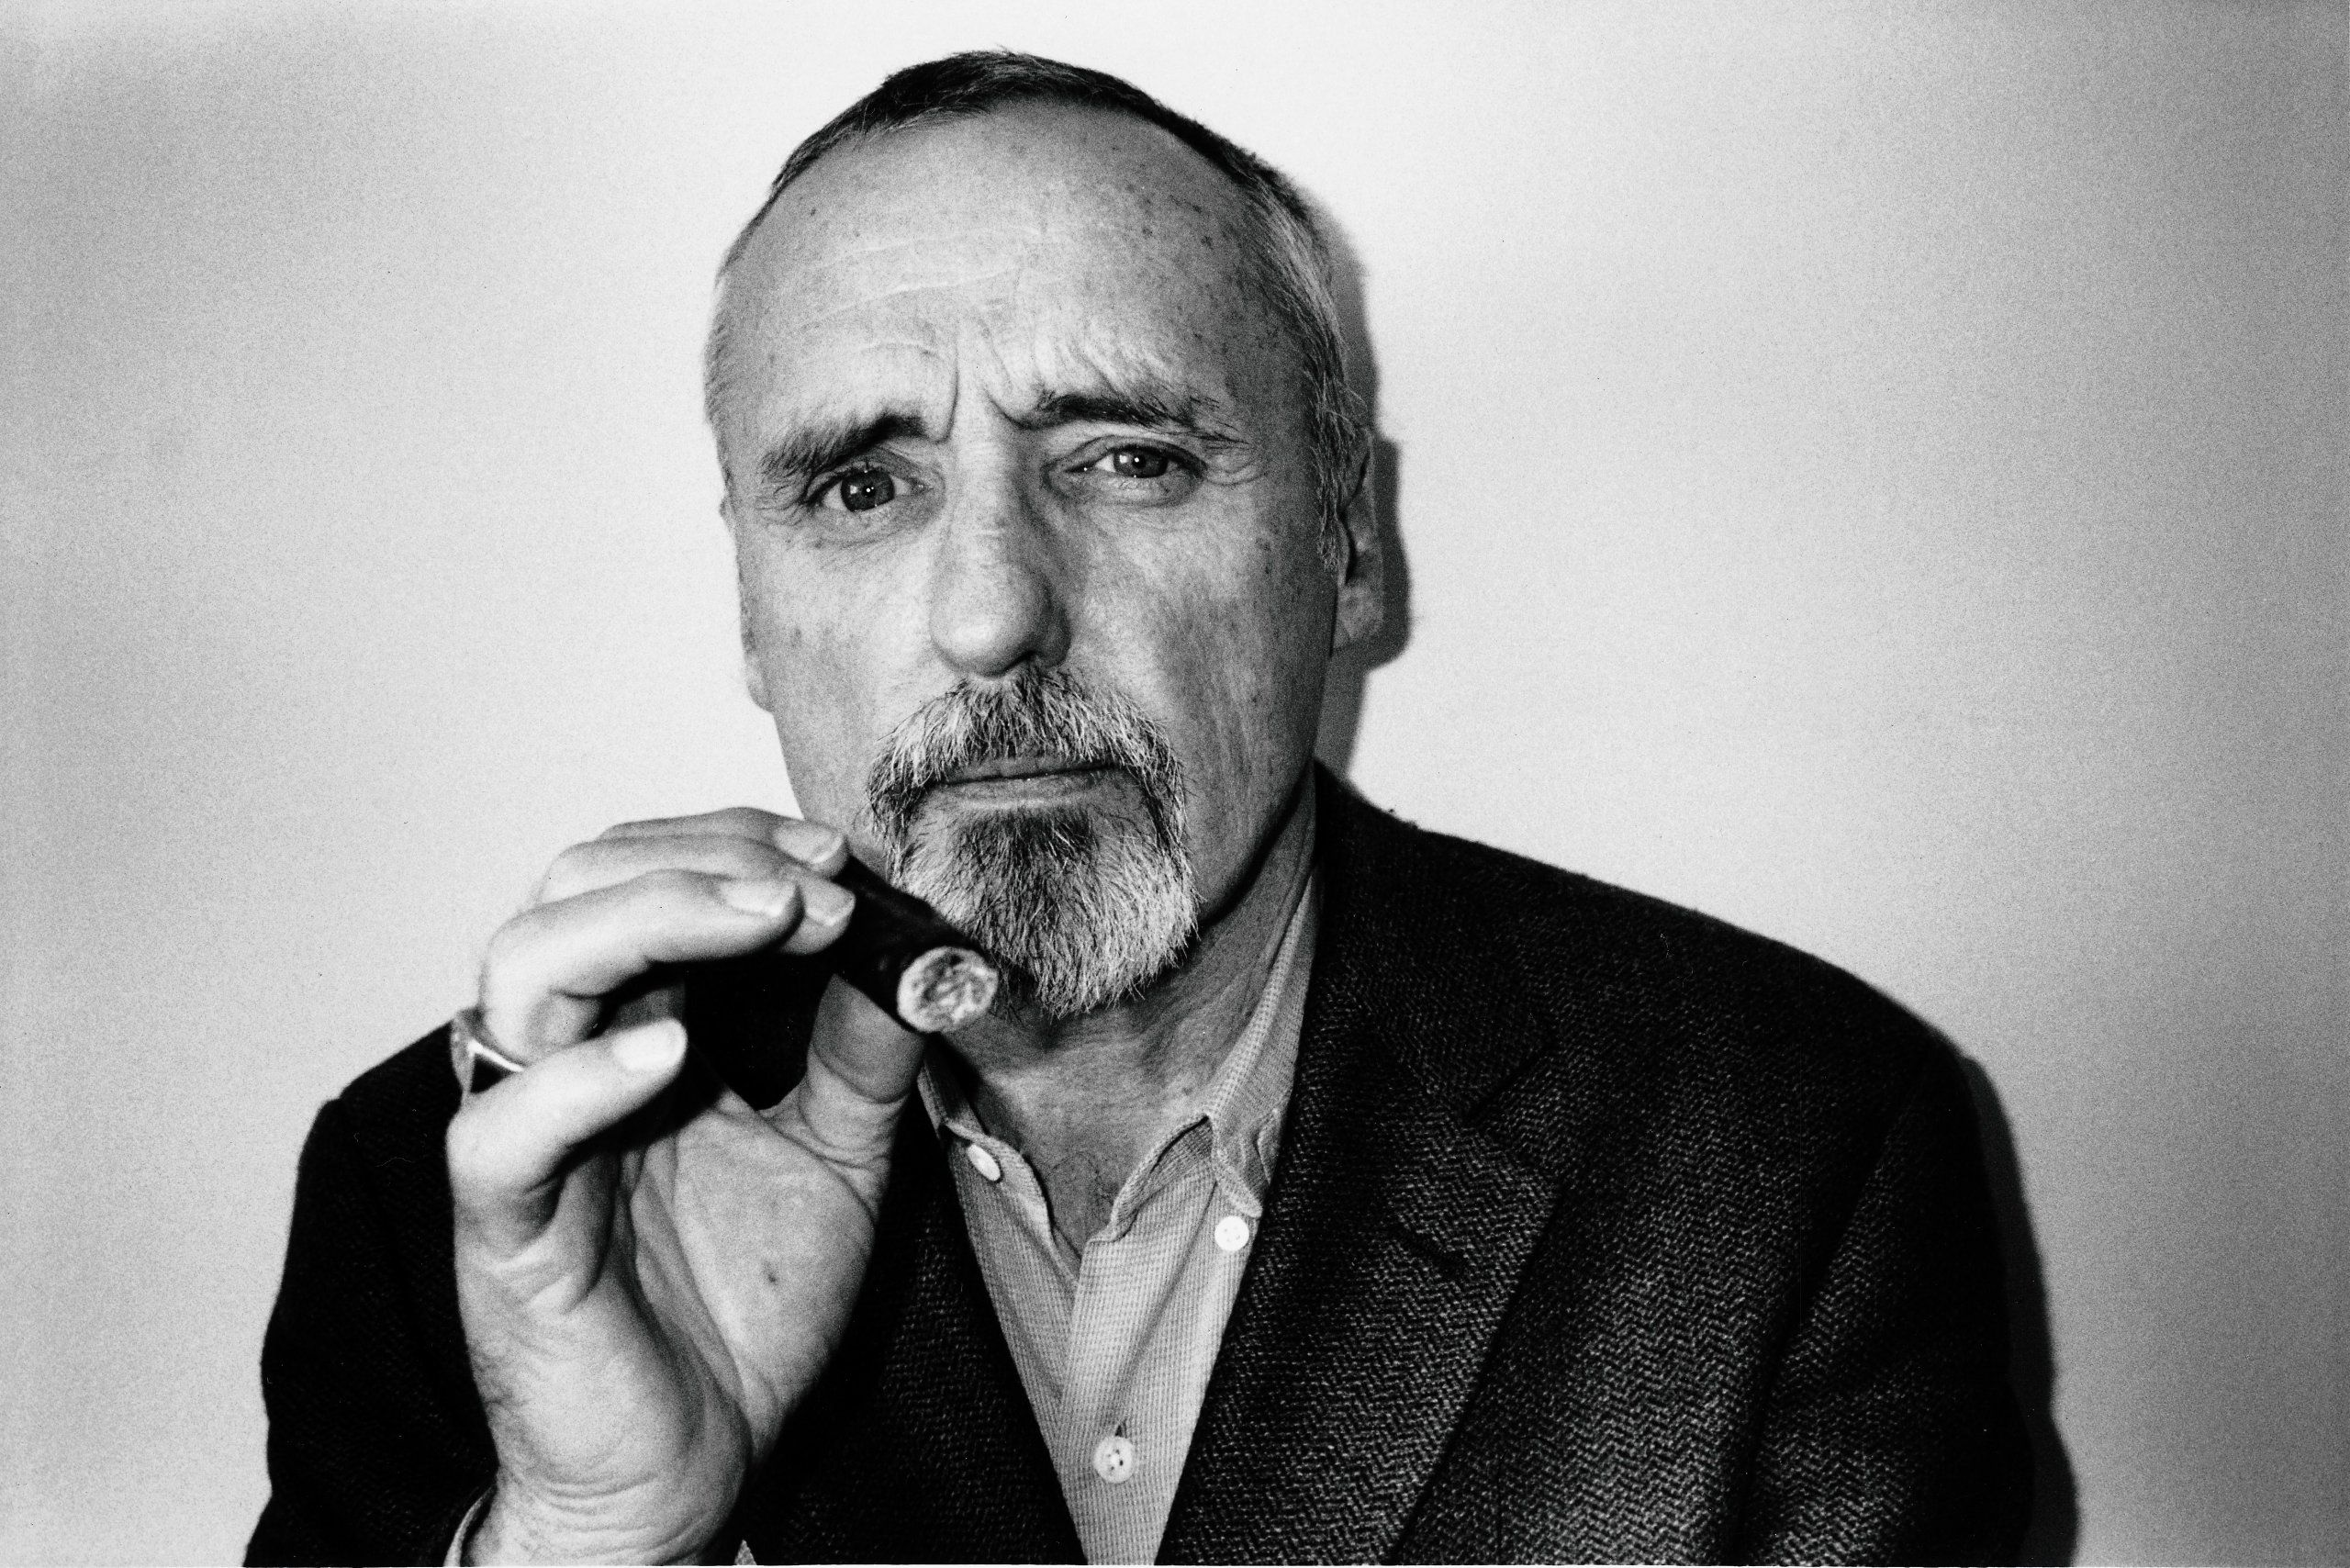 Dennis Hopper Self Portrait Photographs 19611967  Dennis